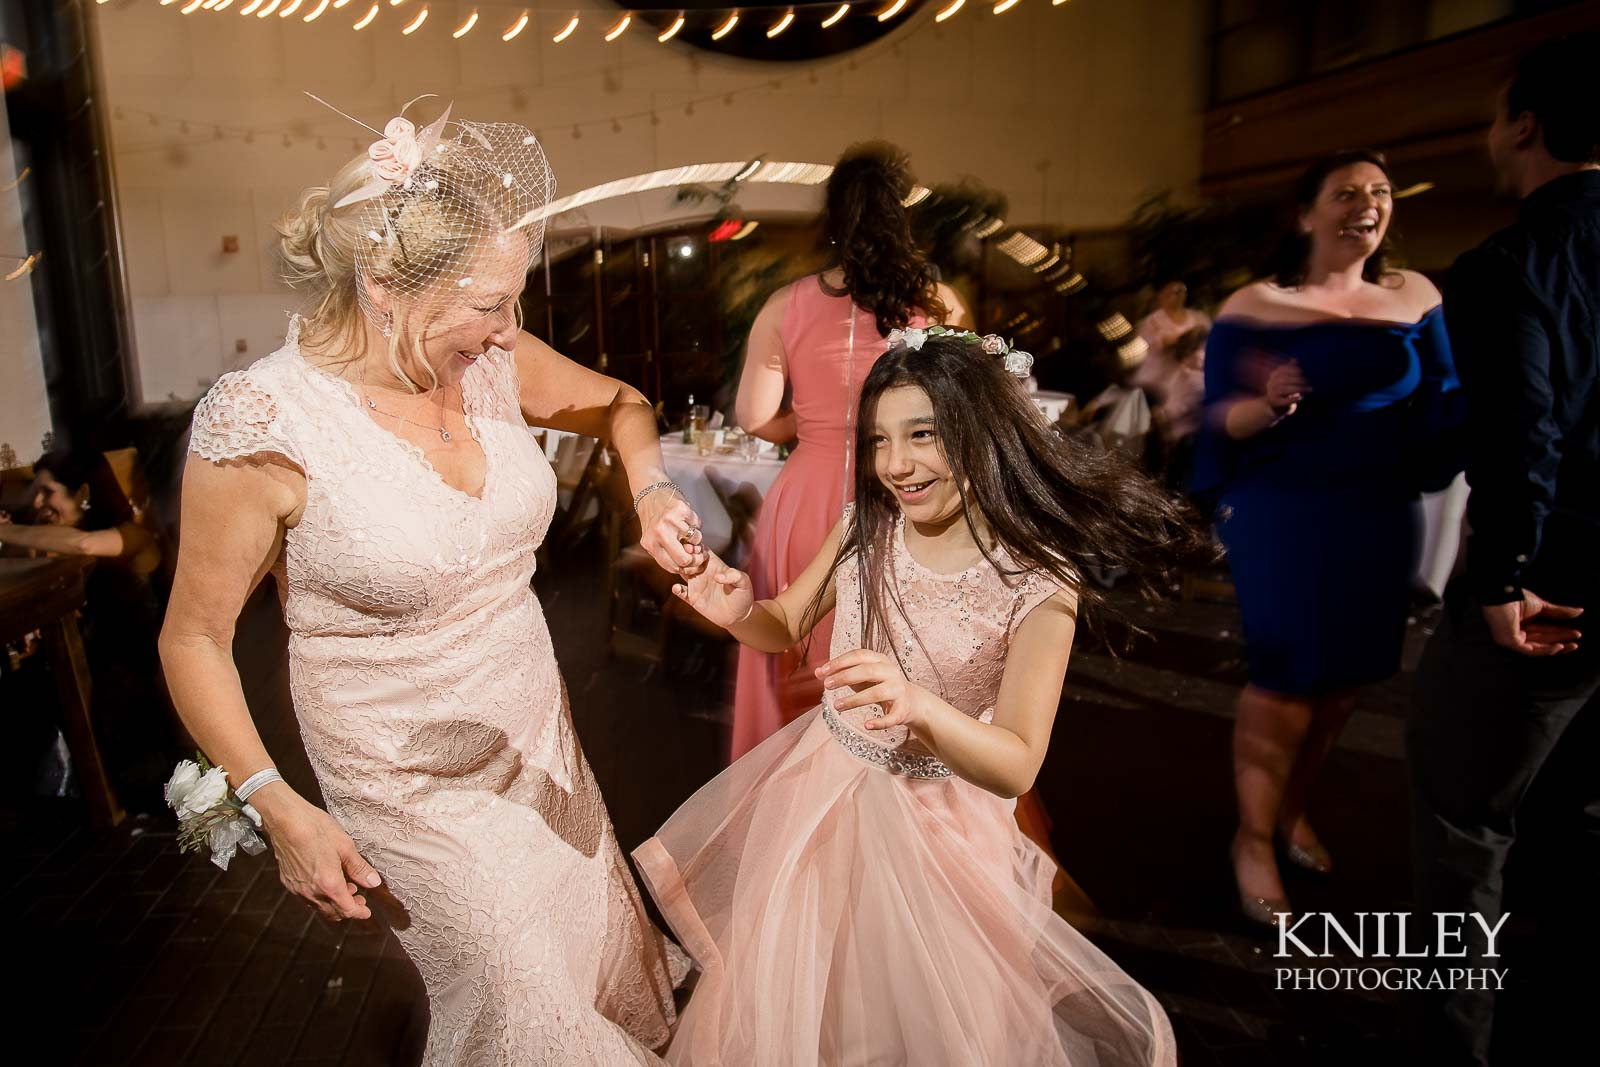 74-Max-of-Eastman-Wedding-and-Reception-Rochester-NY-Kniley-Photography.jpg